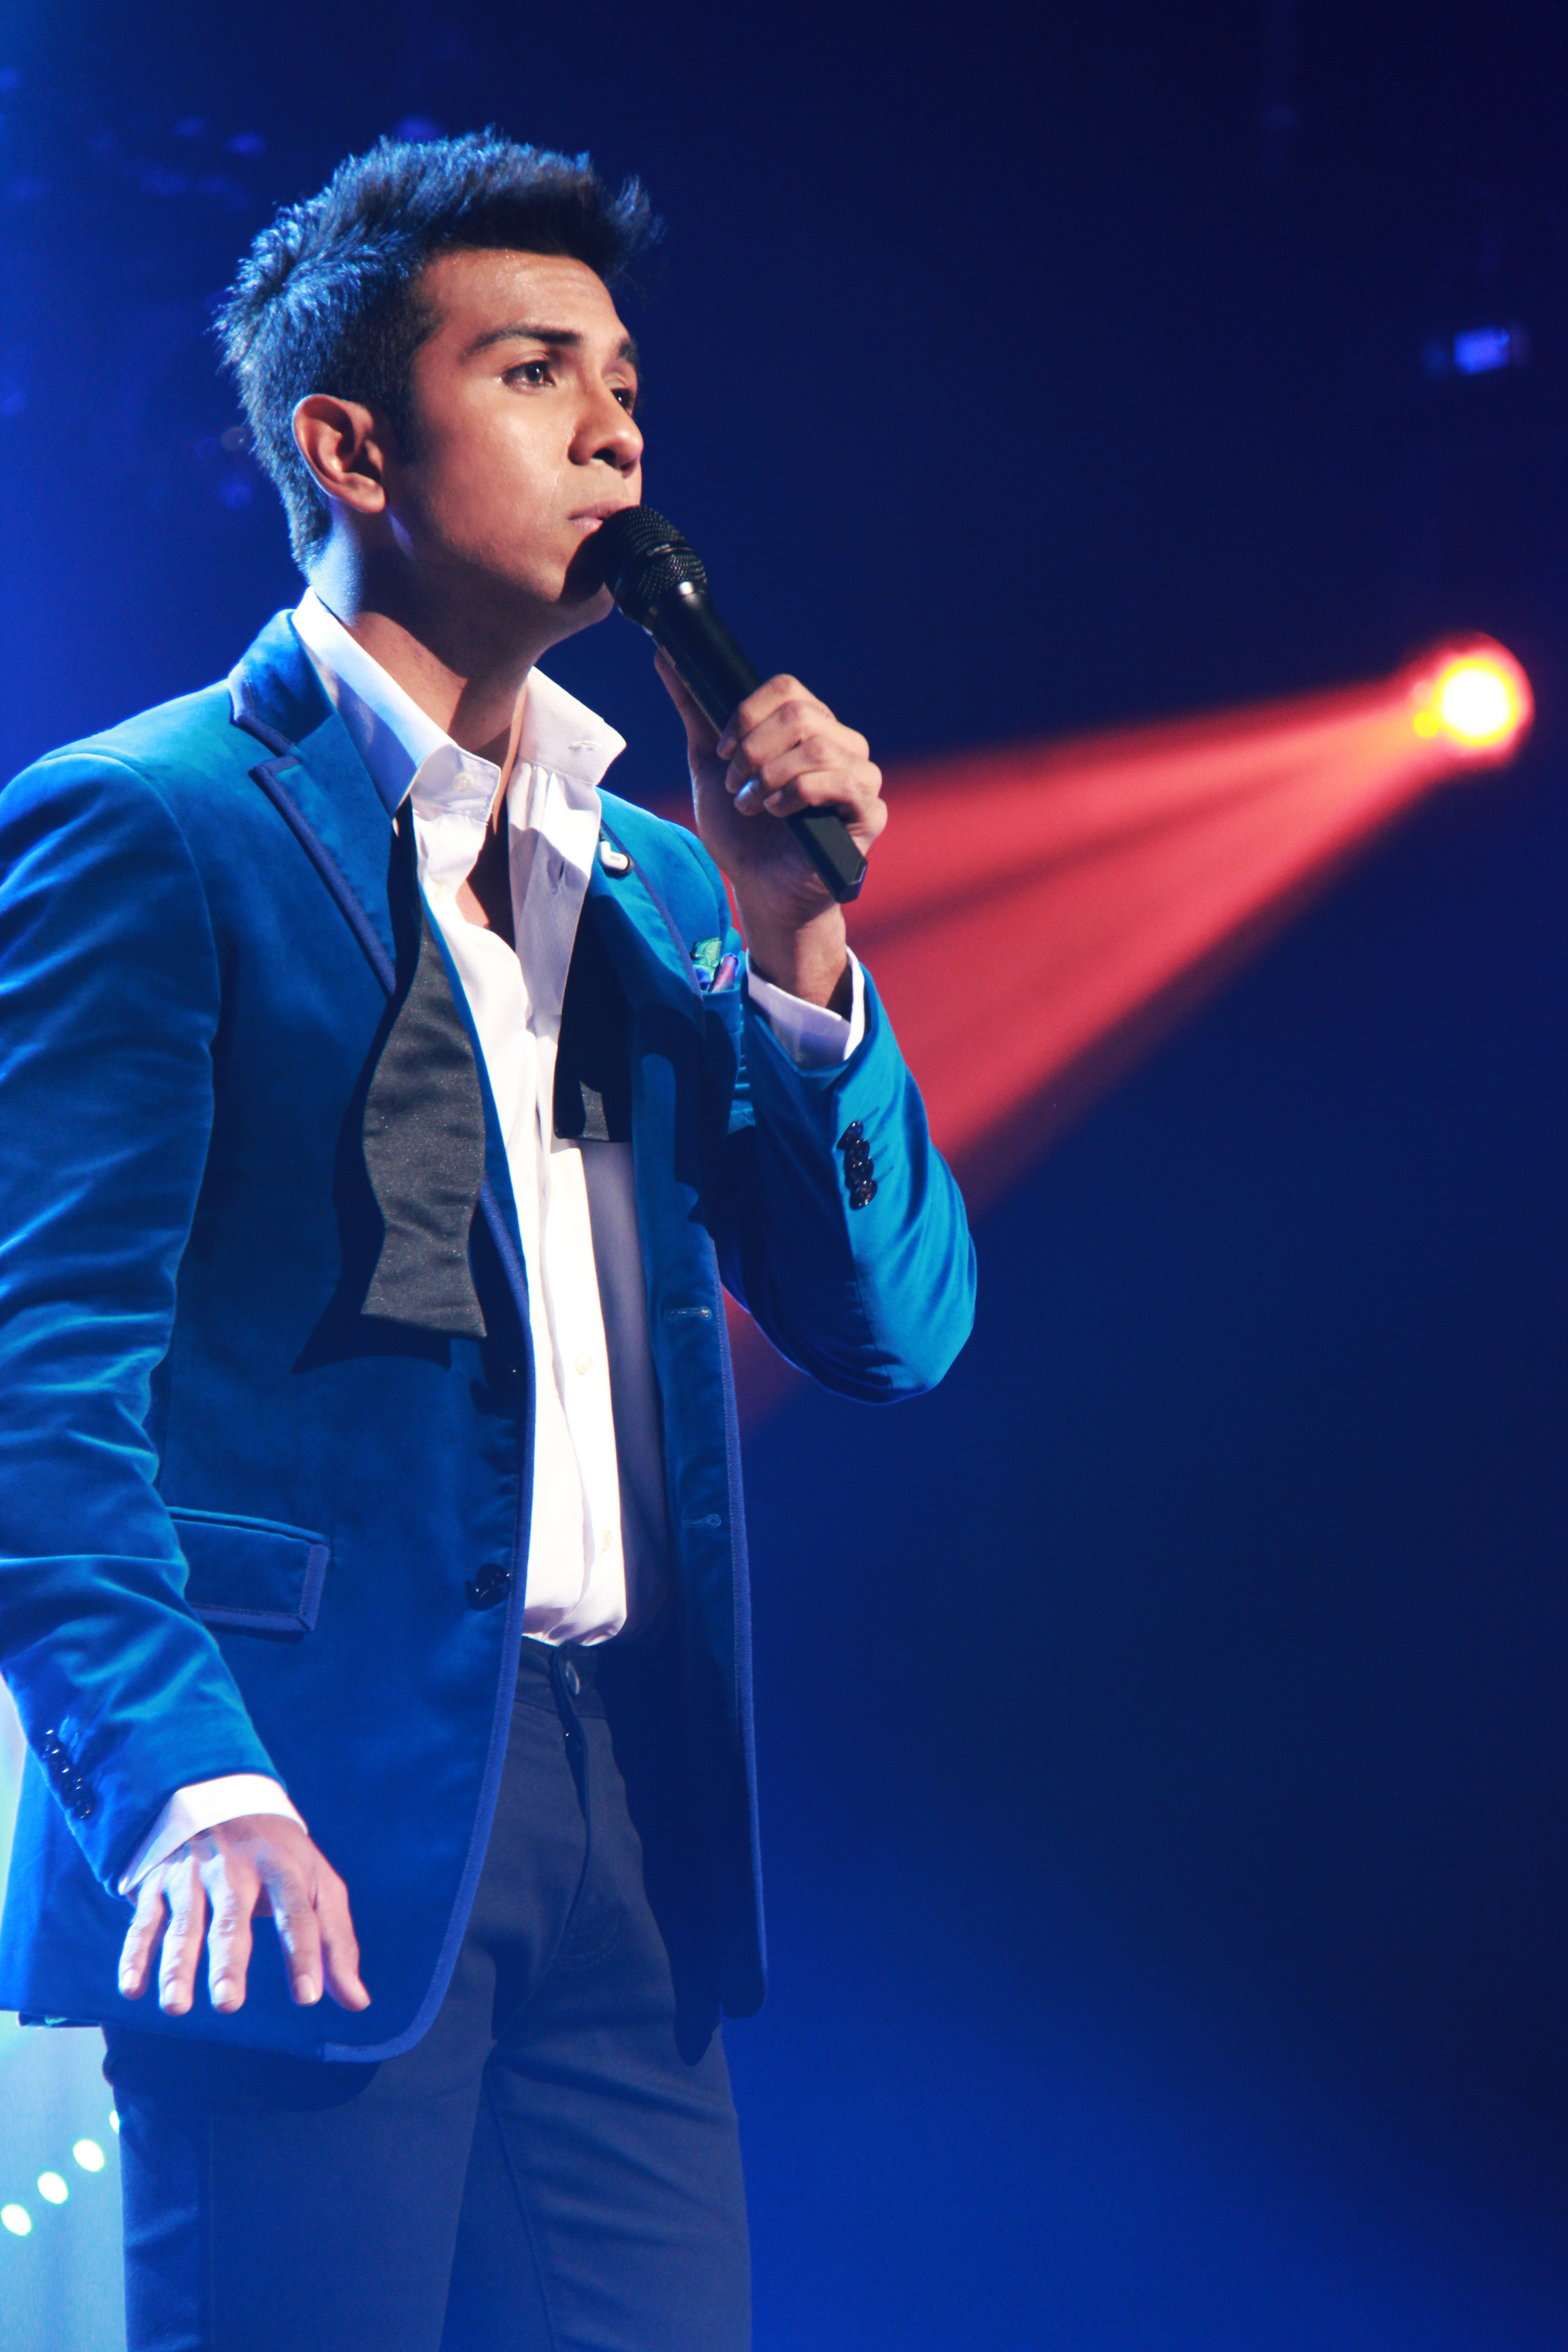 Taufik Batisah - Wikipedia, the free encyclopedia